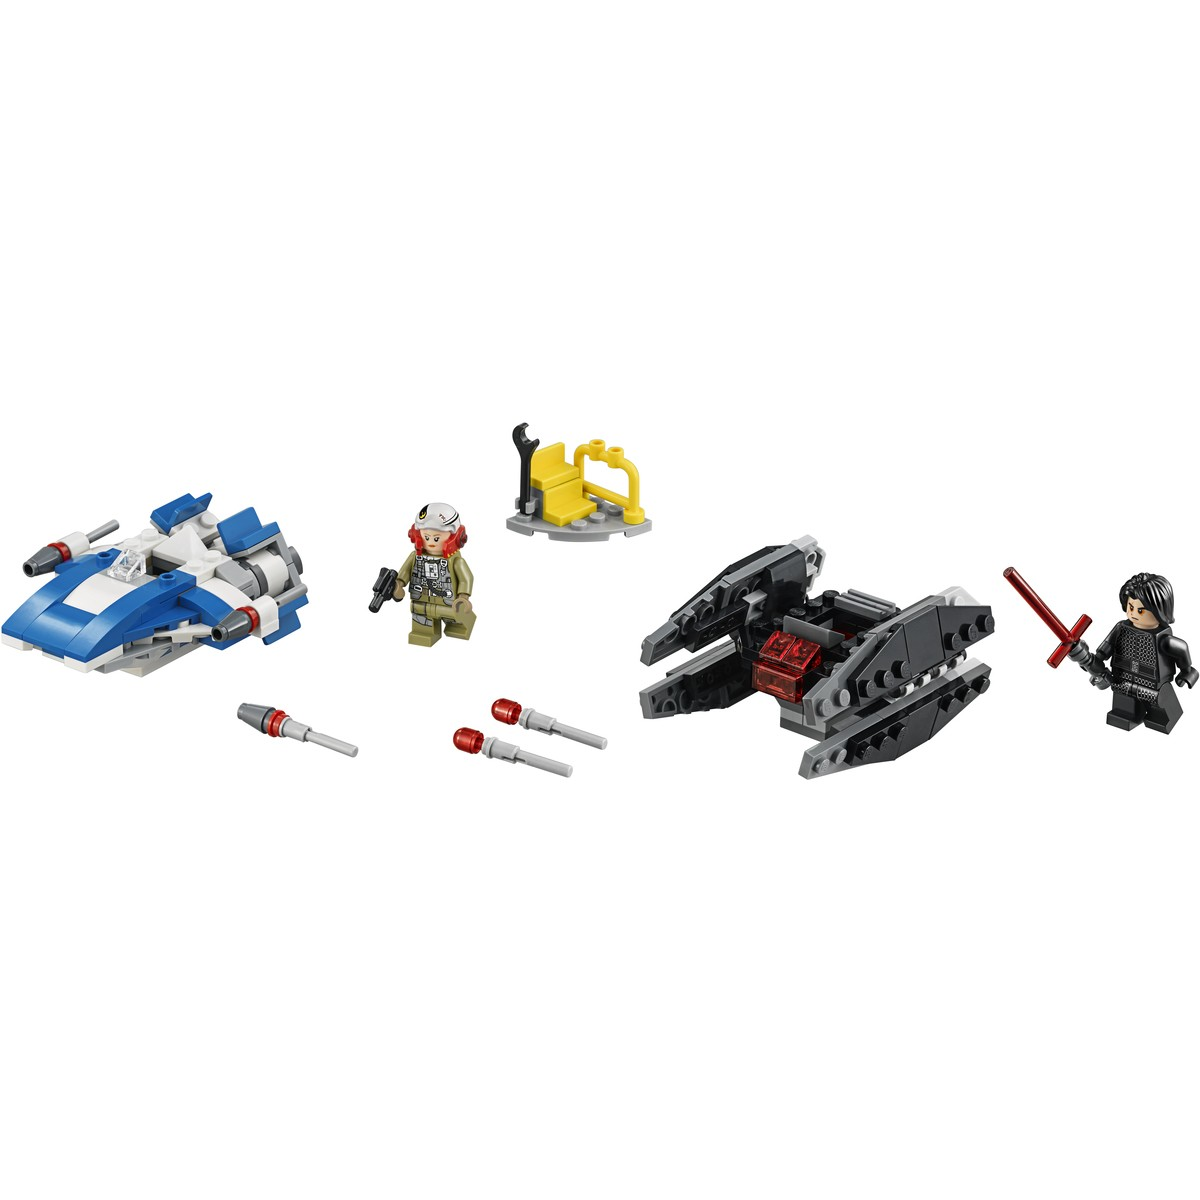 Lego Star Wars A Wing Vs Tie Silencer Microfighters